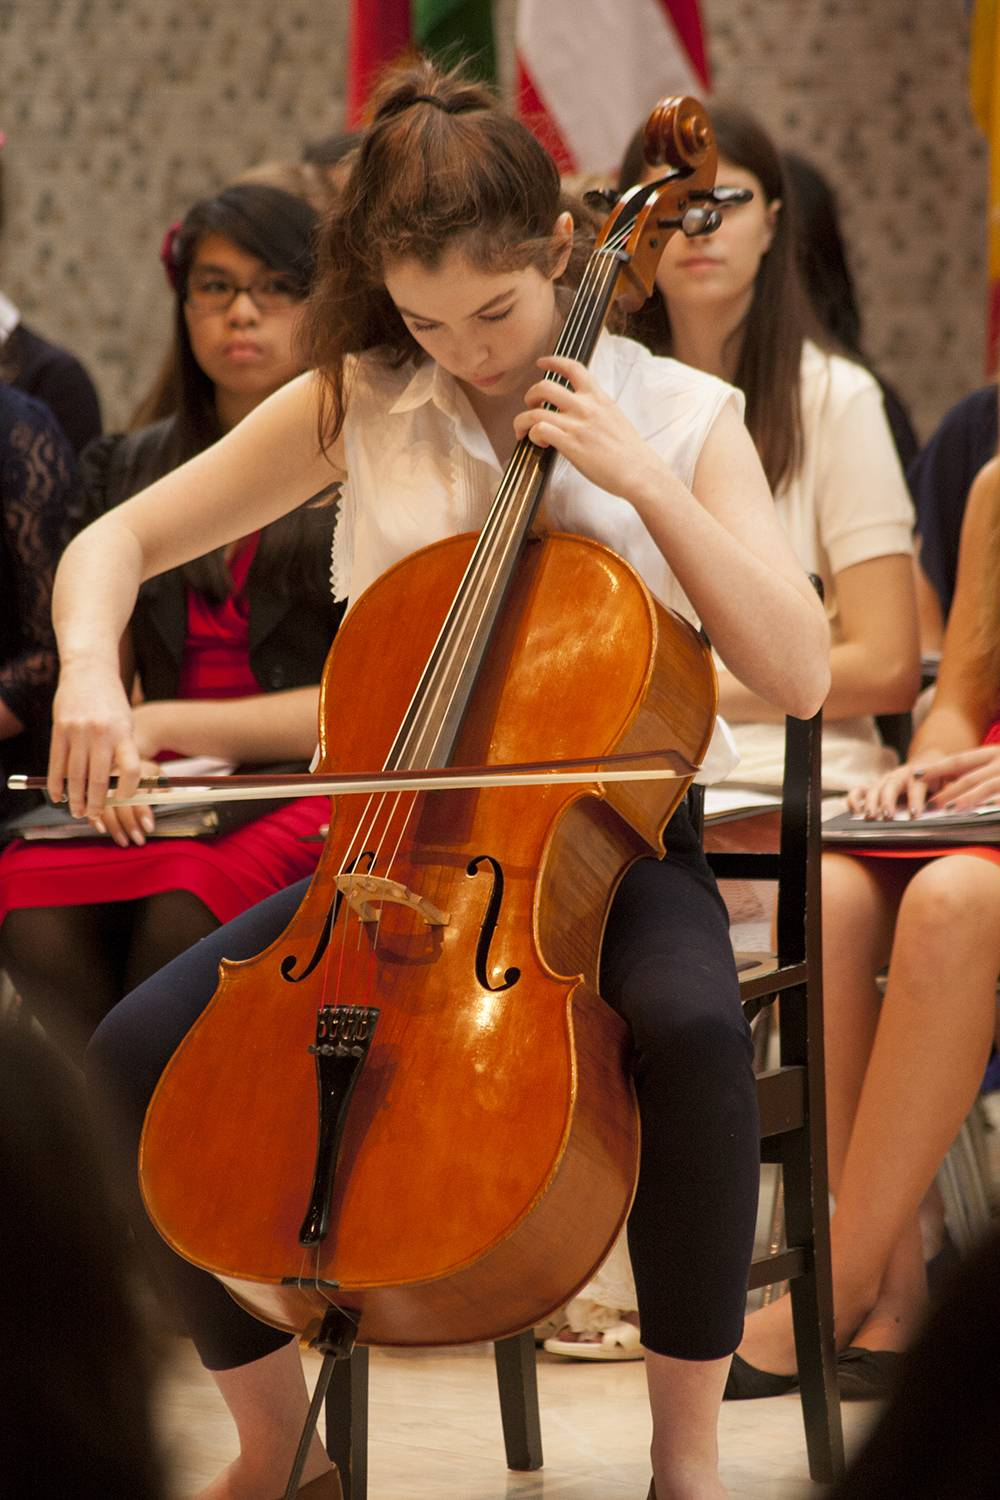 Sophomore Willa Hart of Winnetka will perform a cello solo during the Woodlands Academy Symphonic Orchestra's rendition of Stille Nacht  by Mannheim Steamroller during the high school's annual Christmas Concert Thursday, Dec. 5, at 7 p.m.